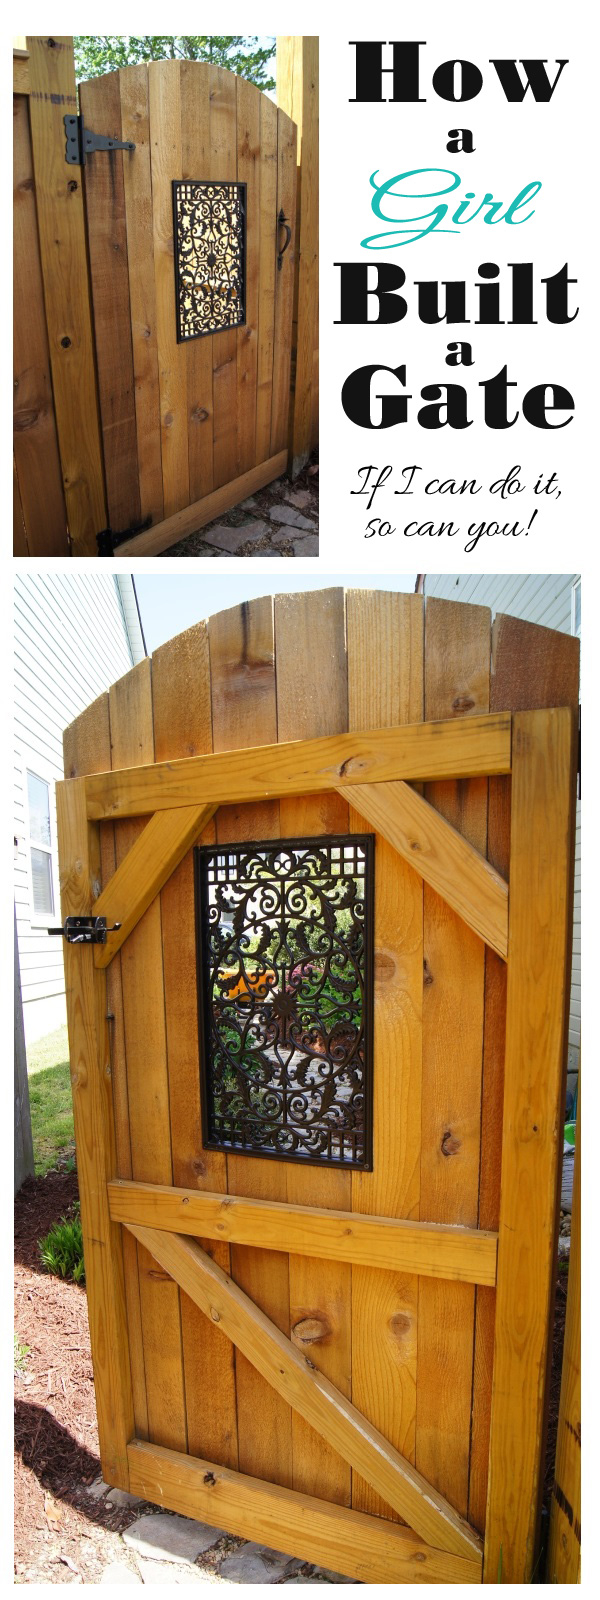 Easy diy gate